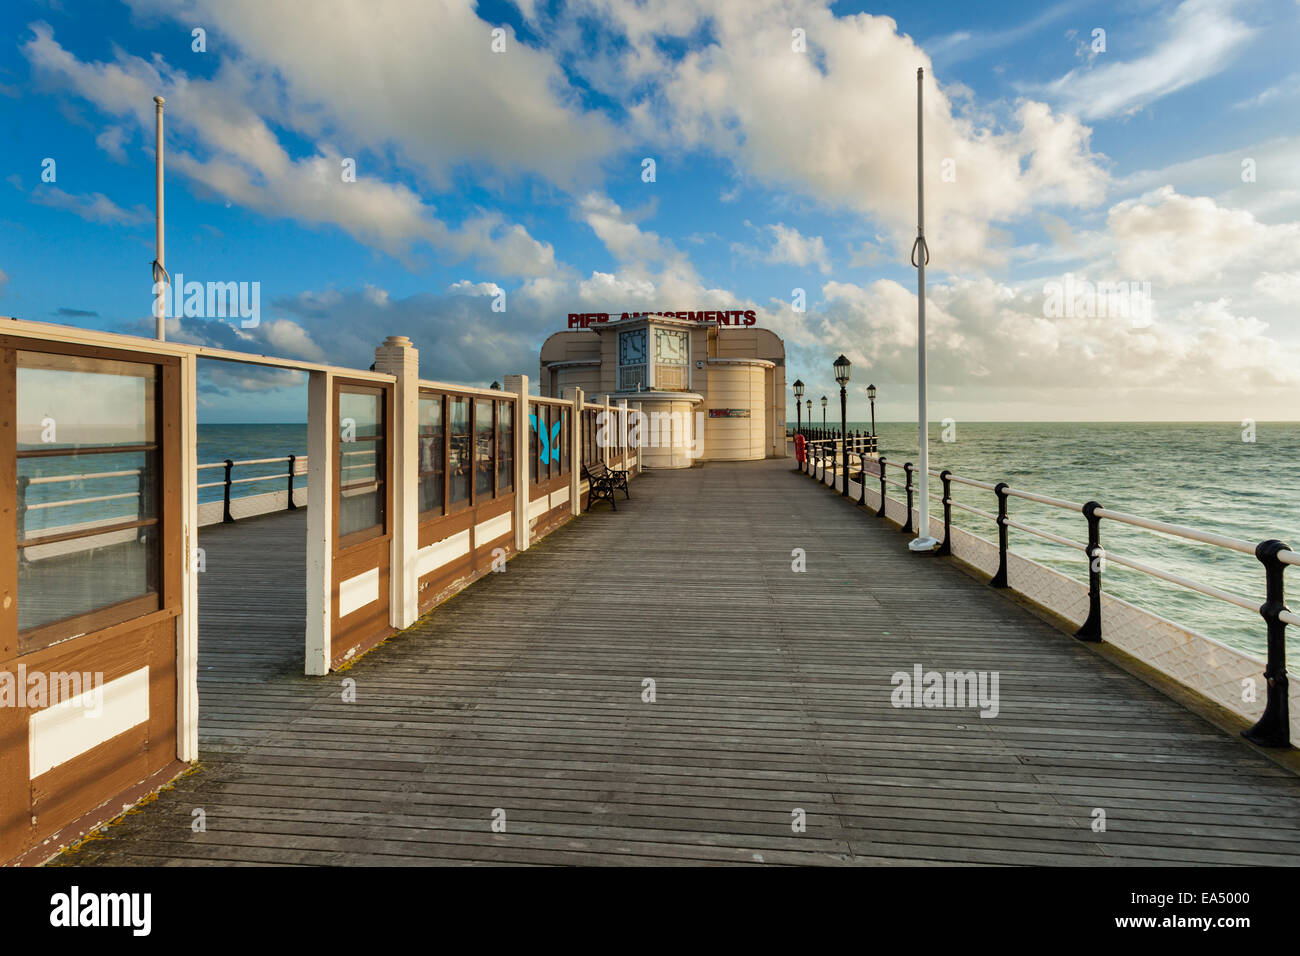 Afternoon at the Worthing Pier, West Sussex, England. - Stock Image